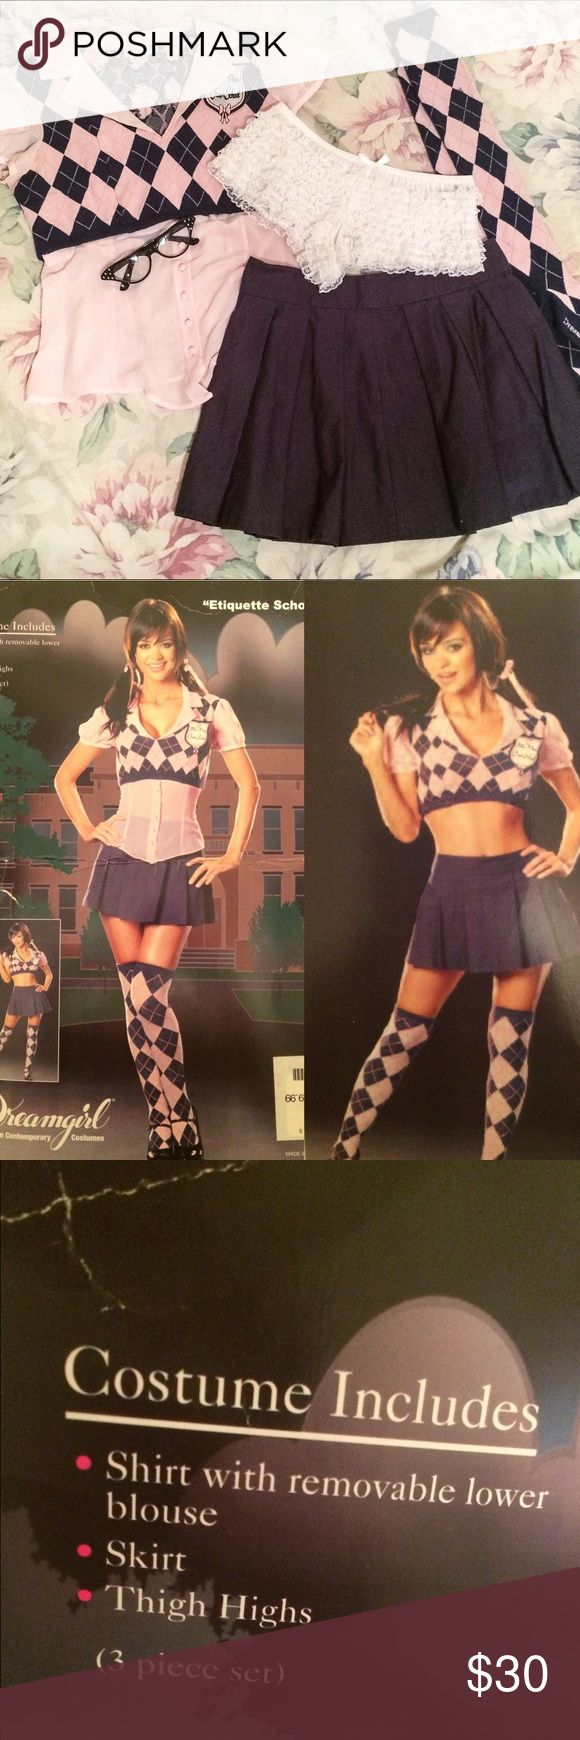 Dreamgirl School Girl Costume with Extras! Everything in picture included! The entire costume, glasses and panties! All size small and in excellent used condition! Top can be worn with or without bottom half of shirt. Dreamgirls Other